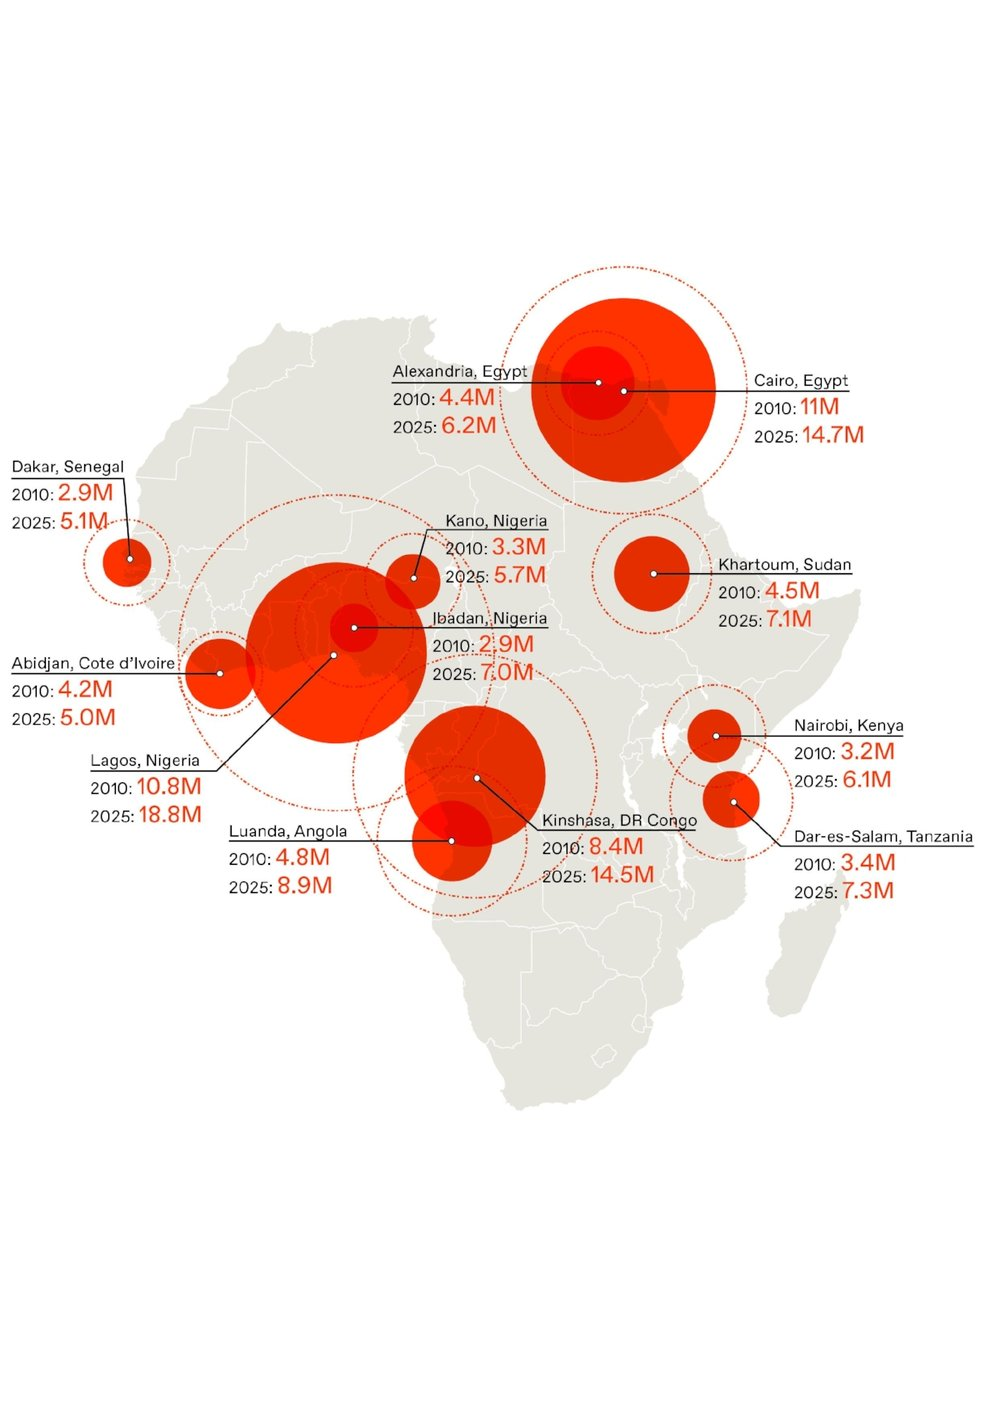 Twelve cities are projected to house five million inhabitants or more by 2025, three of which will be in Nigeria.